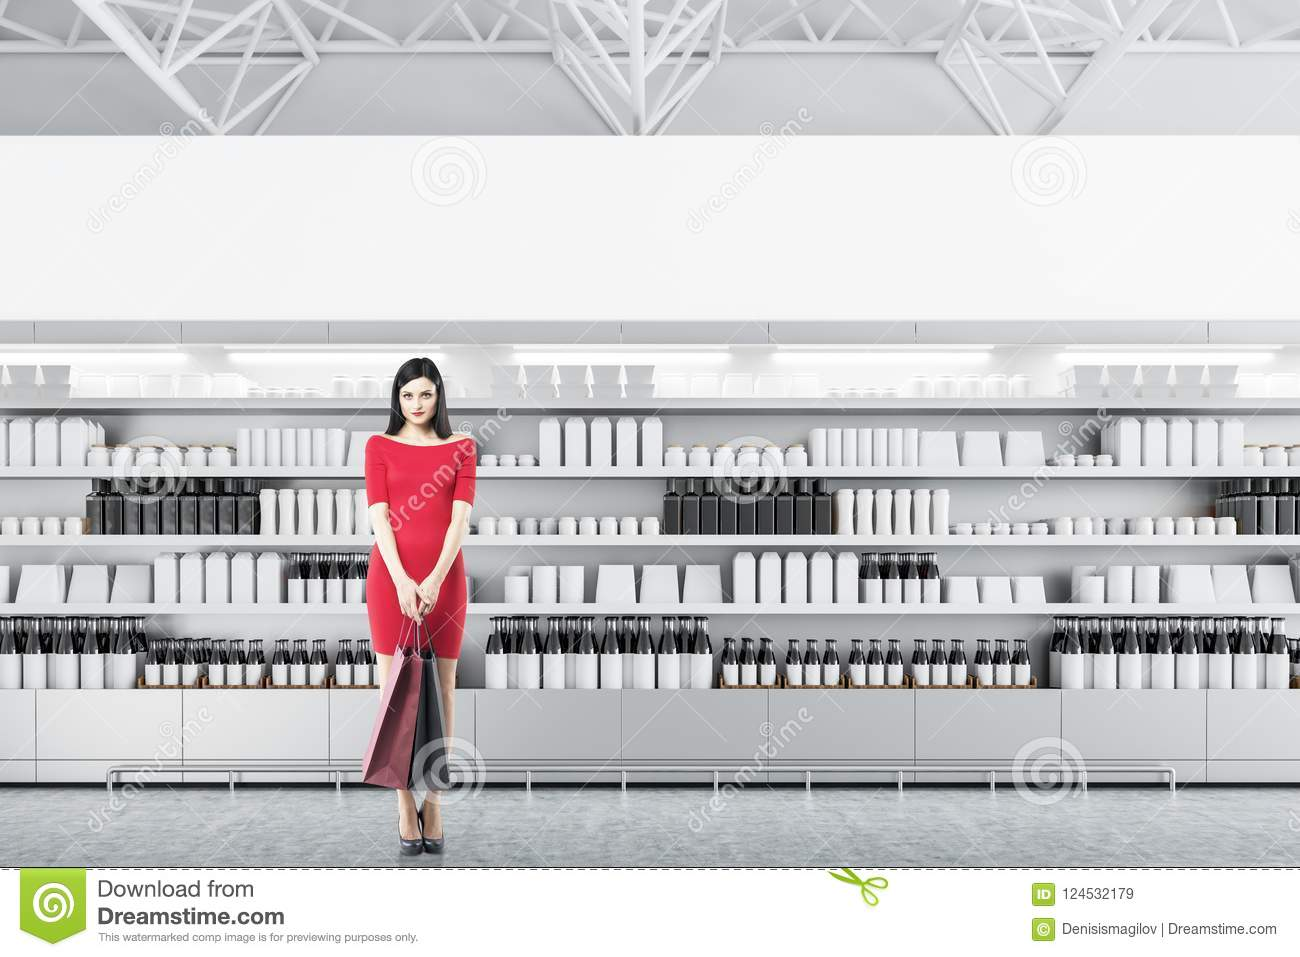 Supermarket Shelves With Mock Up Boxes, Woman Stock